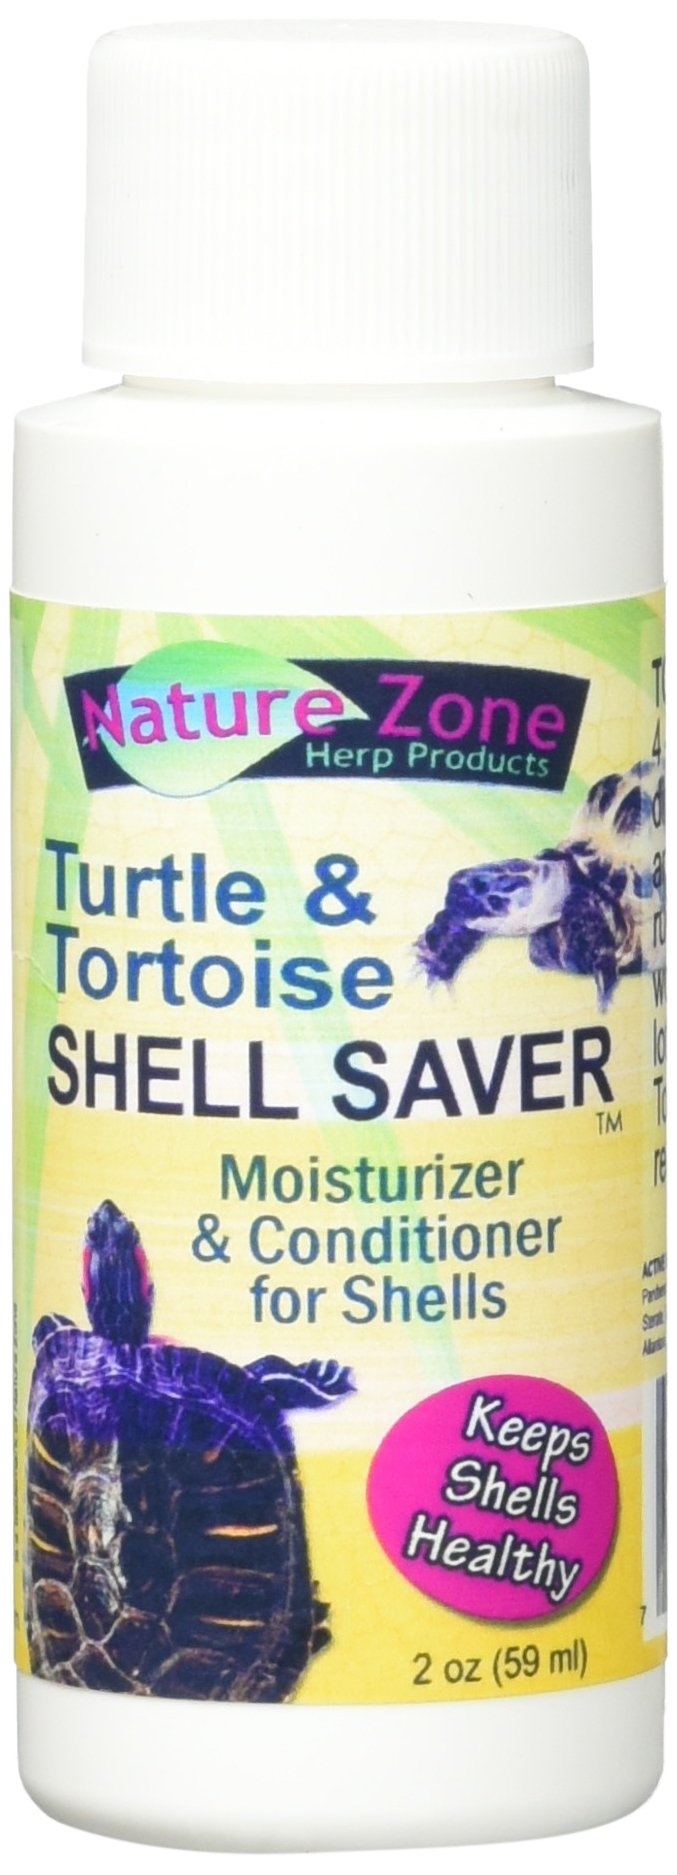 Nature Zone SNZ59261 Turtle Shell Saver Moisturizer/Conditioner, 2-Ounce